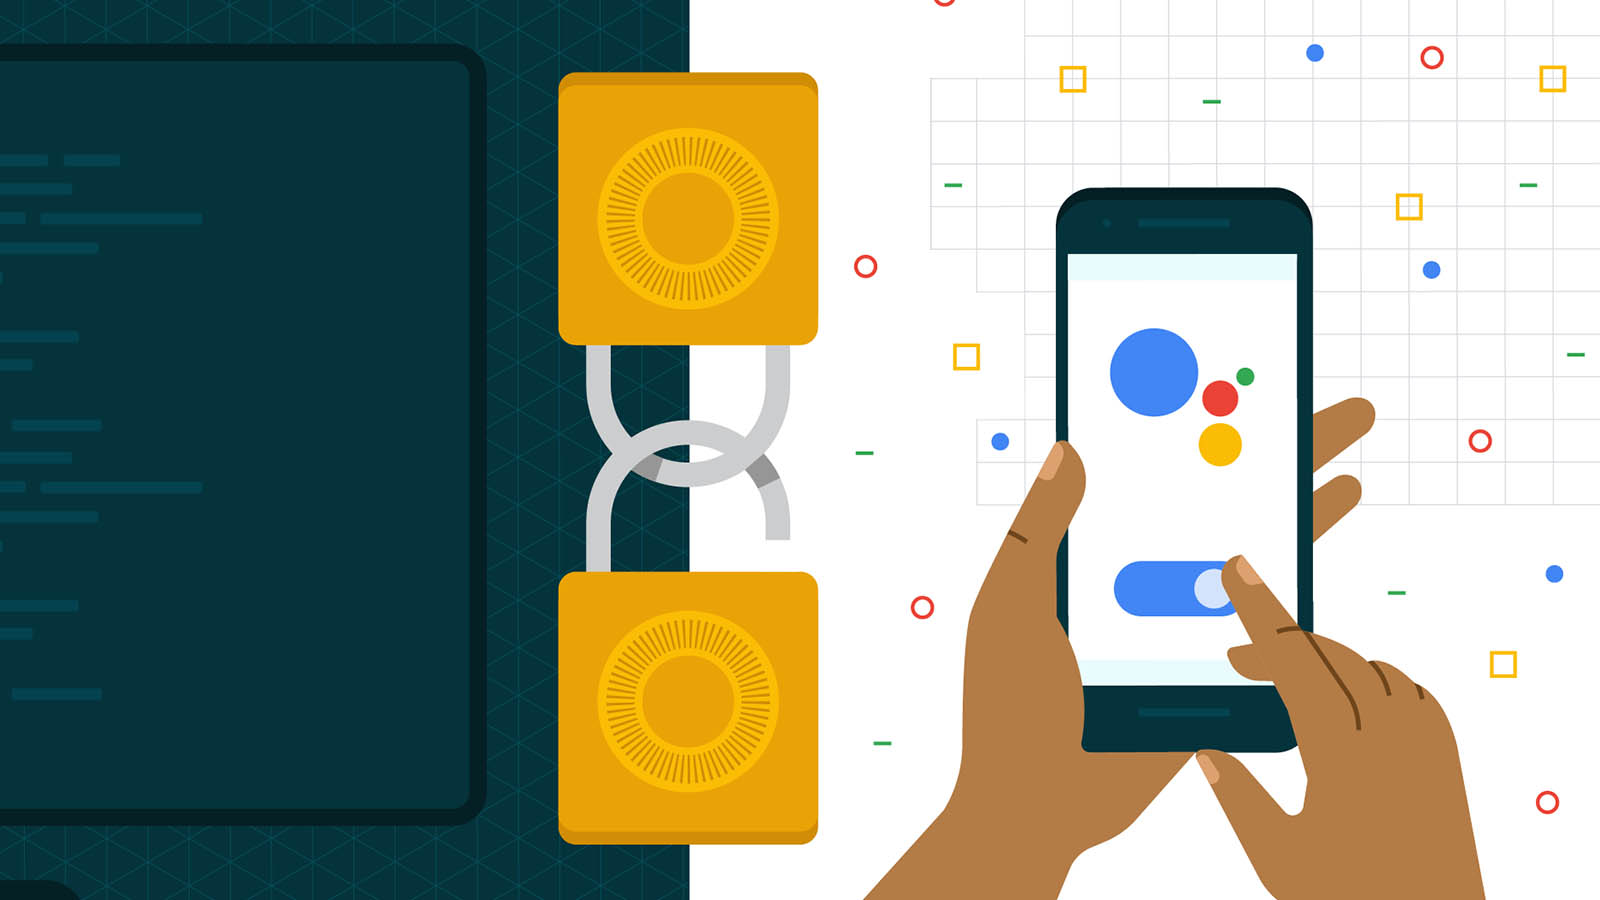 Google sets some guidelines for Assistant-enabled smart devices so that we can all enjoy them a little more